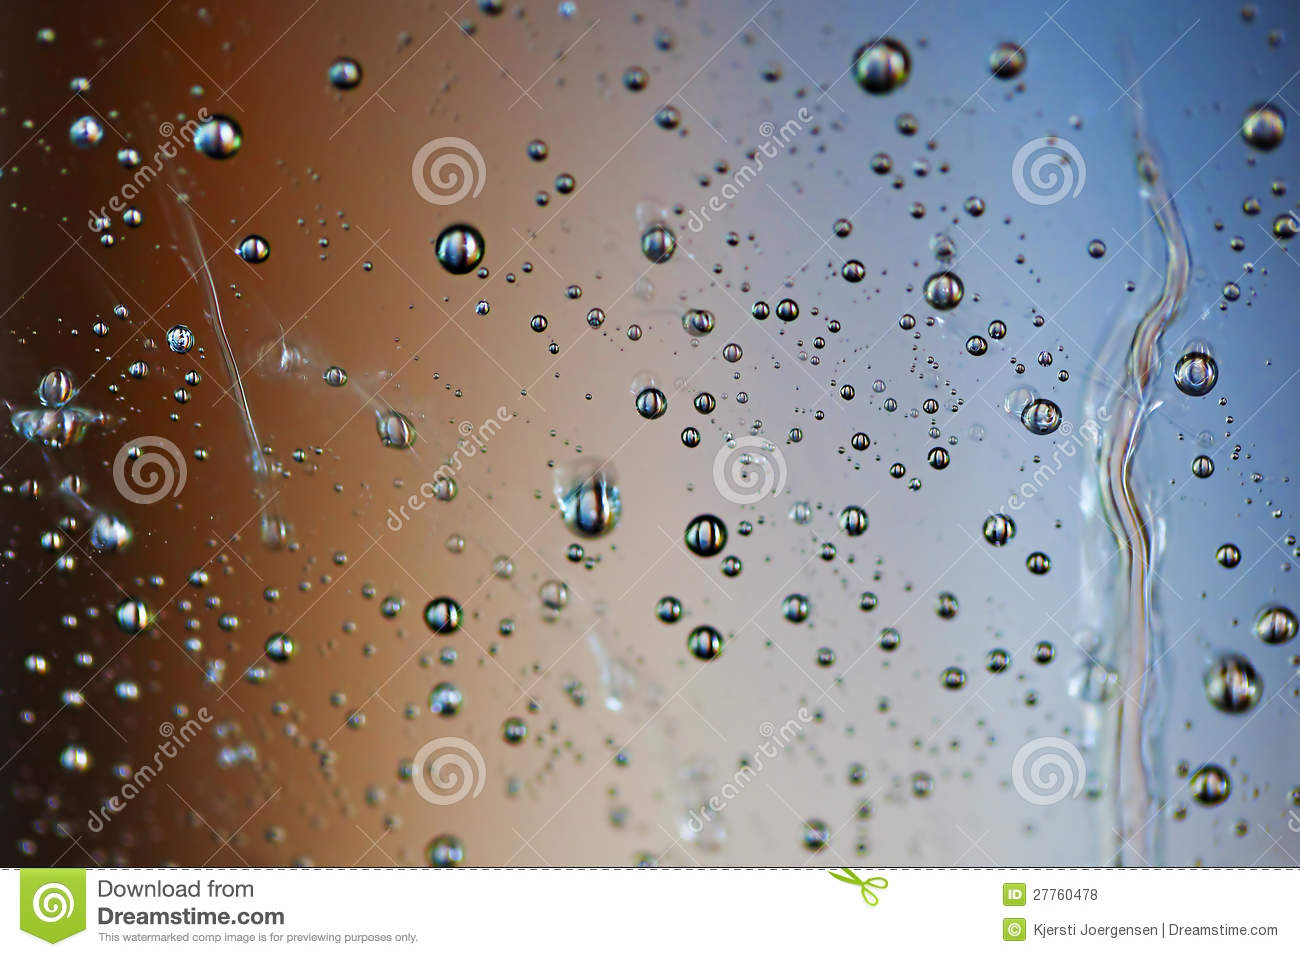 Waterdroplets et couleurs